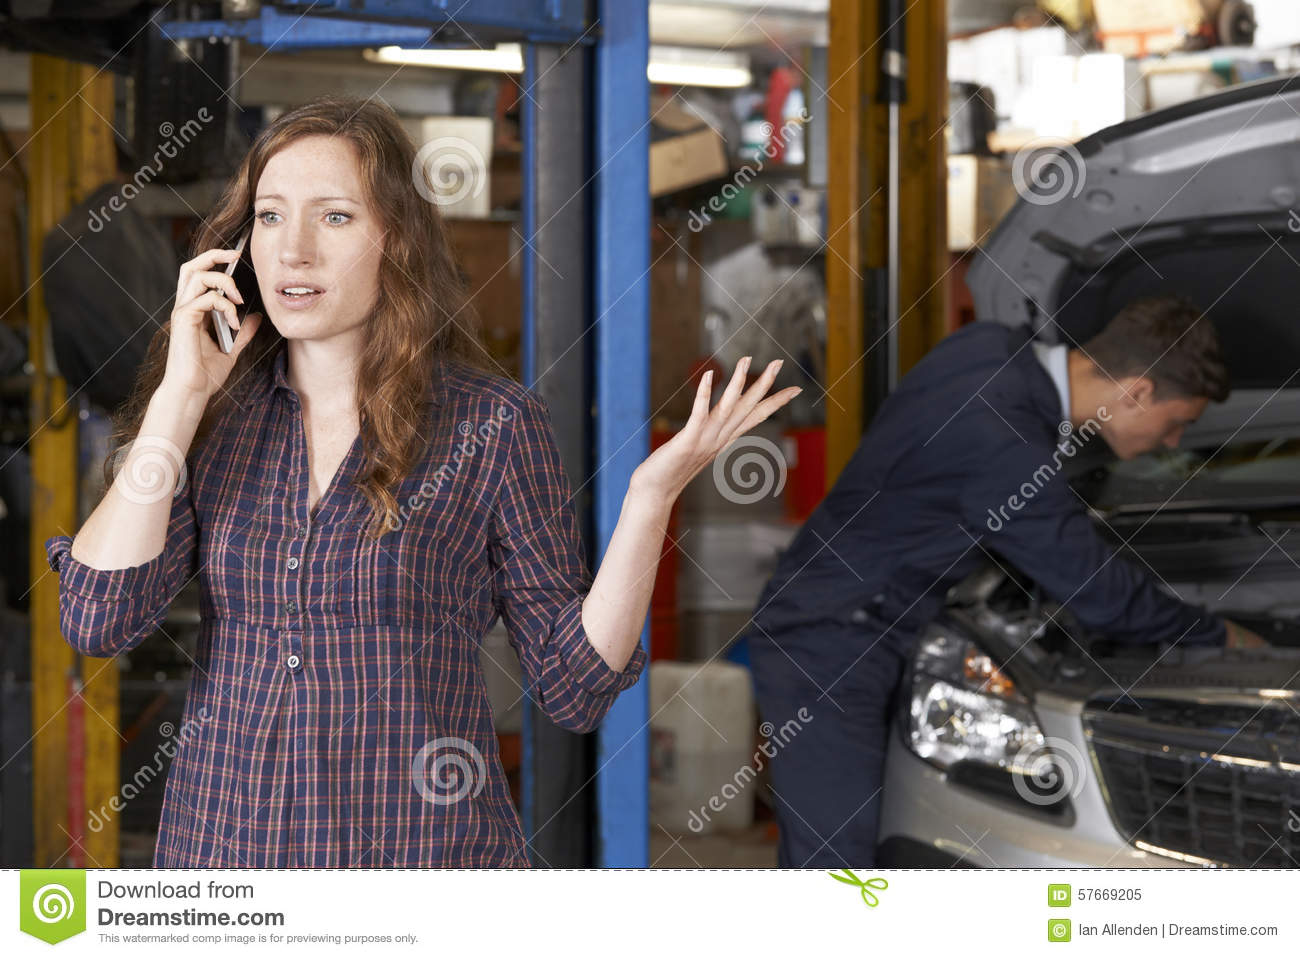 Car Repair Frustration Good Owner Guide Website Agco Automotive Service Baton Rouge La Detailed Auto Frustrated Female Customer On Mobile Phone At Shop Stock Rh Dreamstime Com Bluetooth